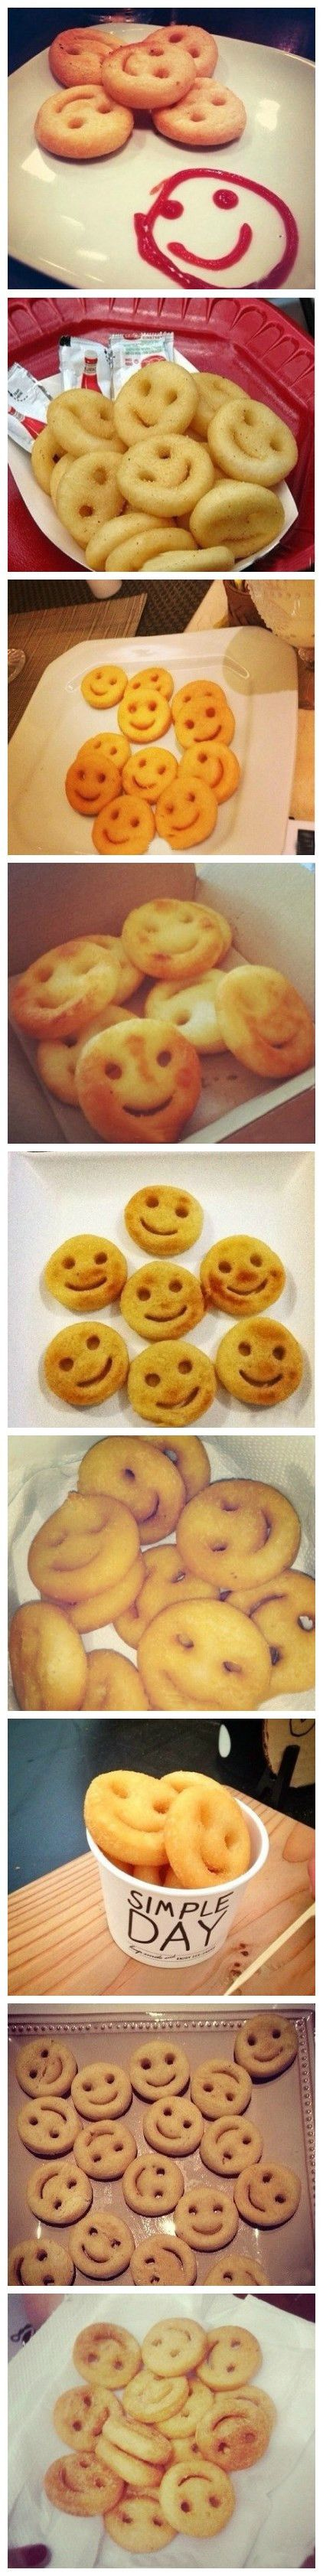 Homemade potato smiles|potato smiley